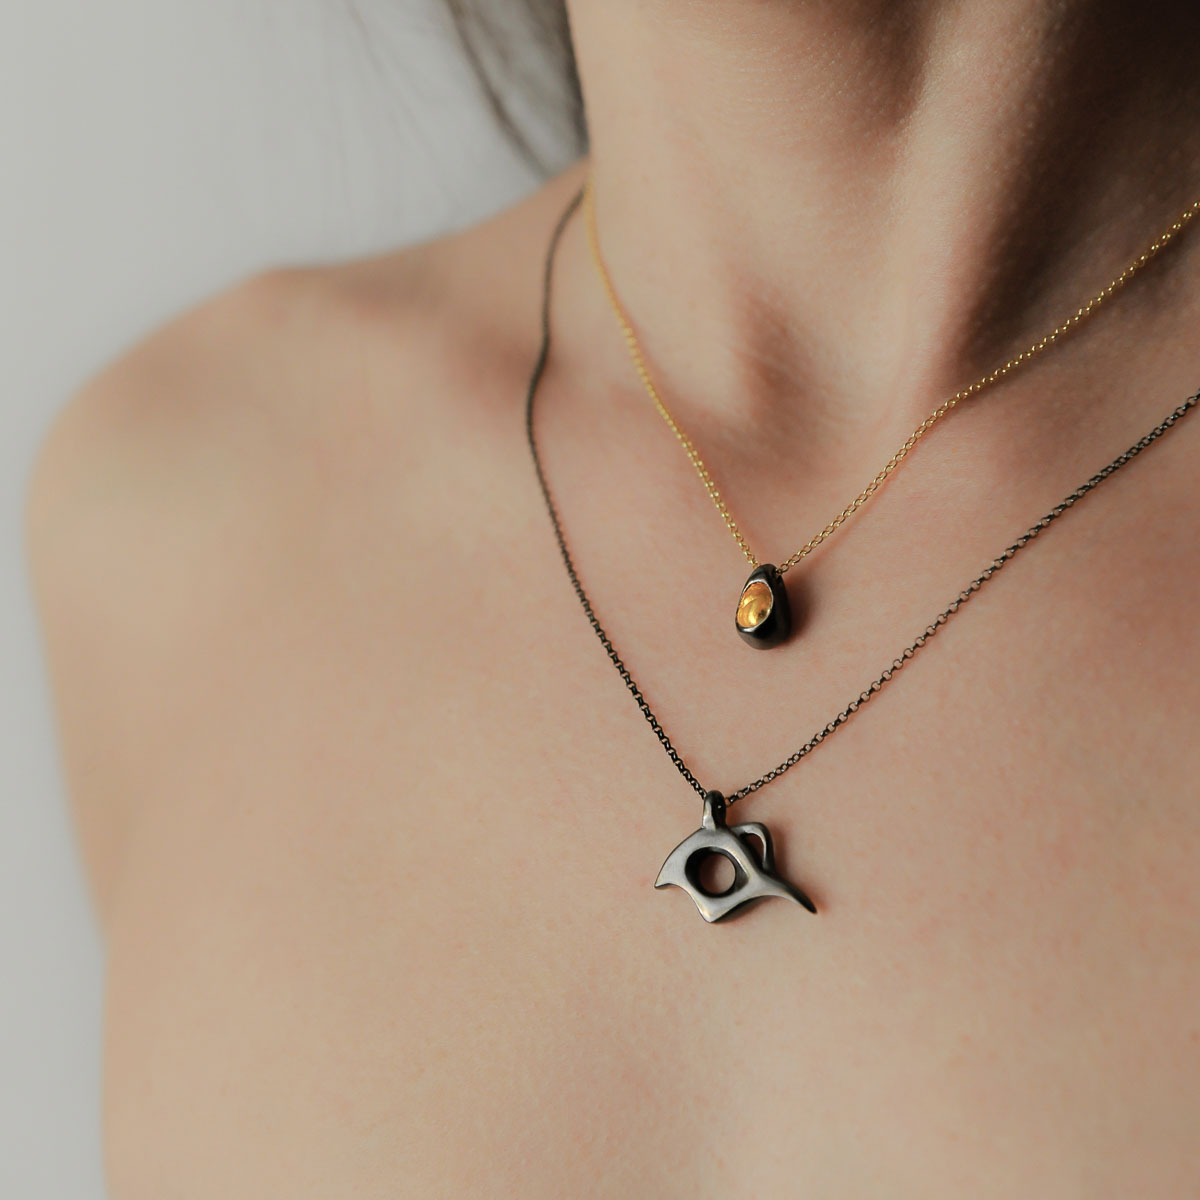 """""""Seeds and Pits"""" necklace in gold plated silver and """"Bird of Paradise"""" necklace in black rhodium. Design and handmade for Bead A Boo jewelry by Katerina Glinou."""